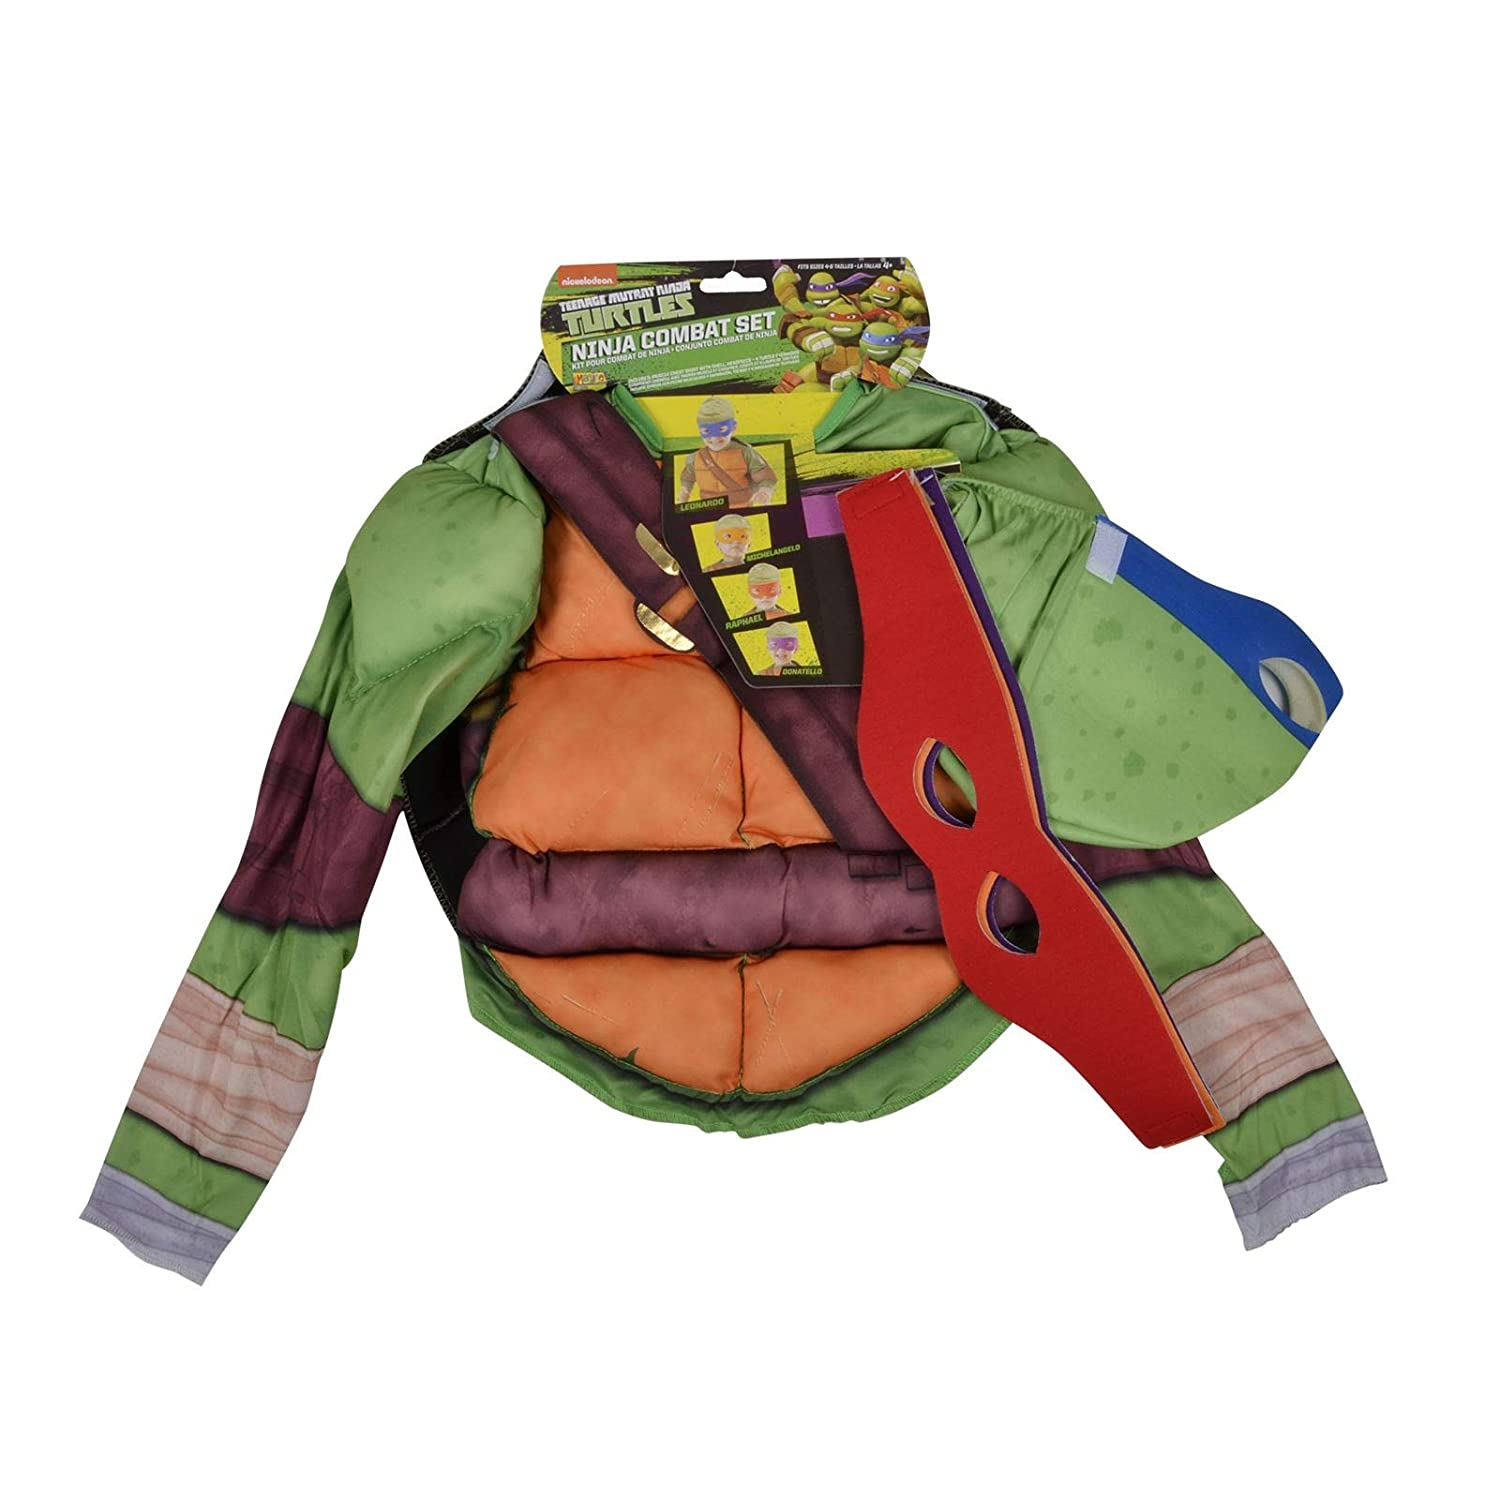 Amazon.com: Flair Teenage Mutant Ninja Turtles Ninja ...